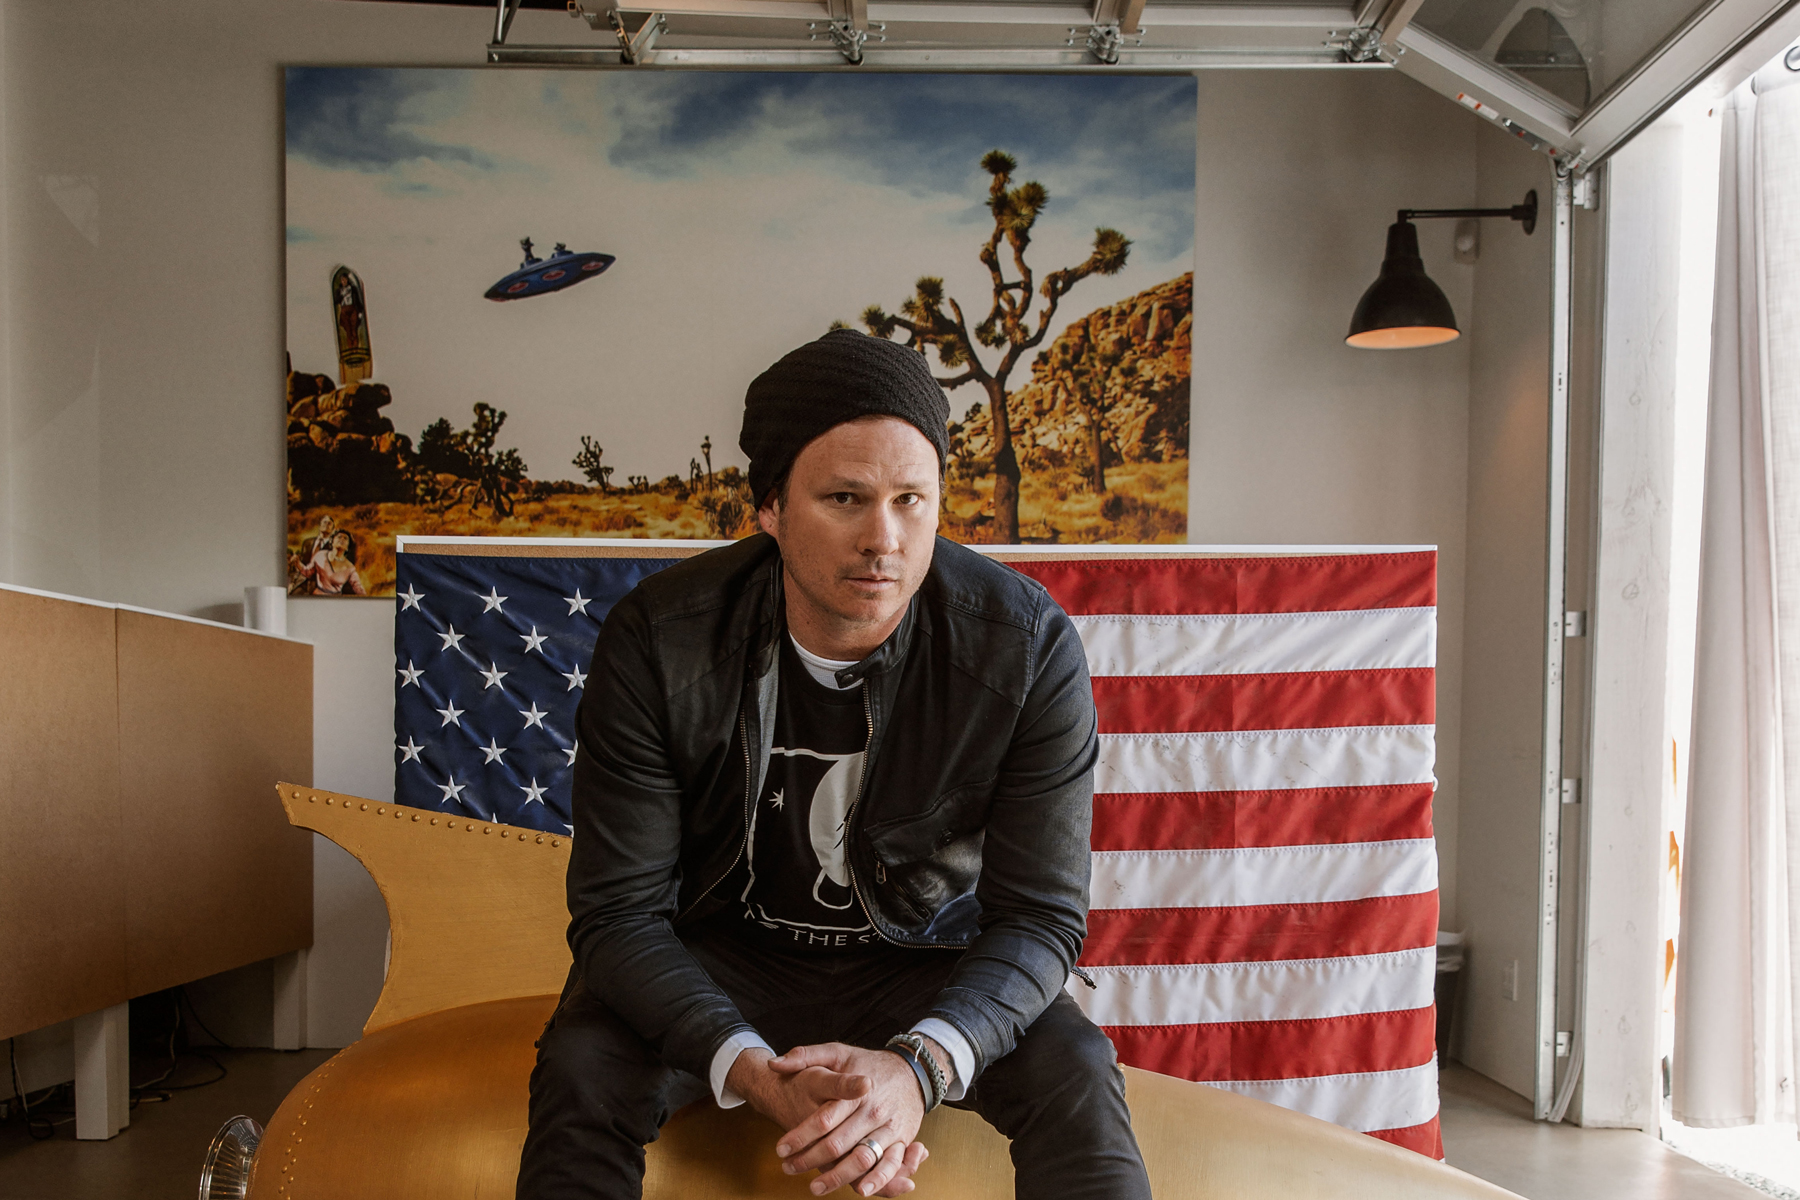 Tom DeLonge on His 2019 UFO Research: 'This Is the Year Things Really Ignited' - EpicNews